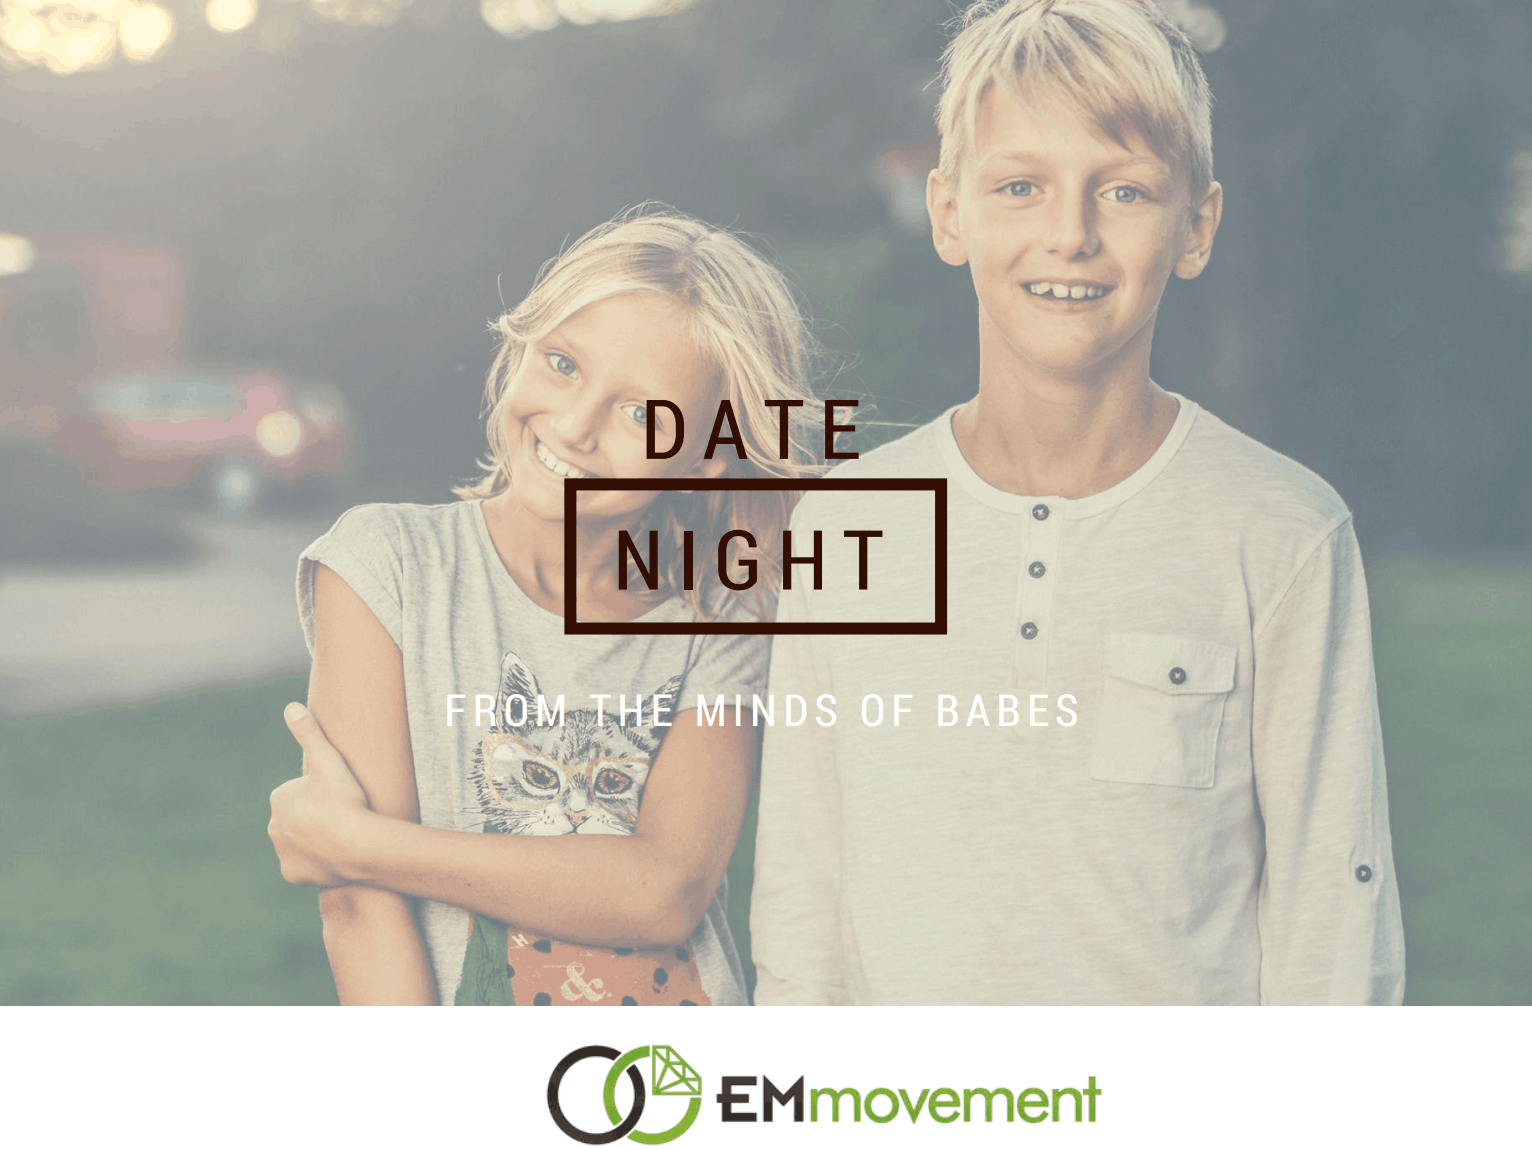 Creative Date Idea for Parents - Ask the Kids